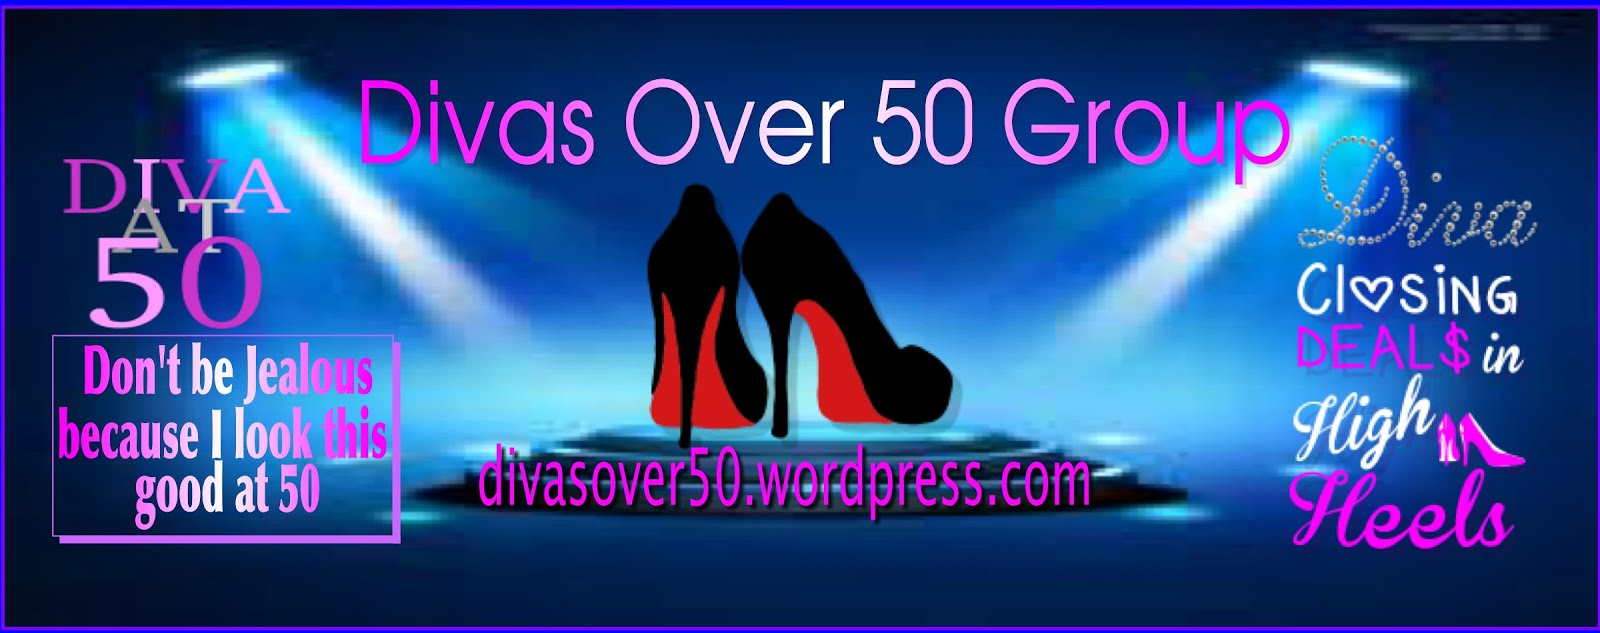 Divas Over 50 Group (Facebook)